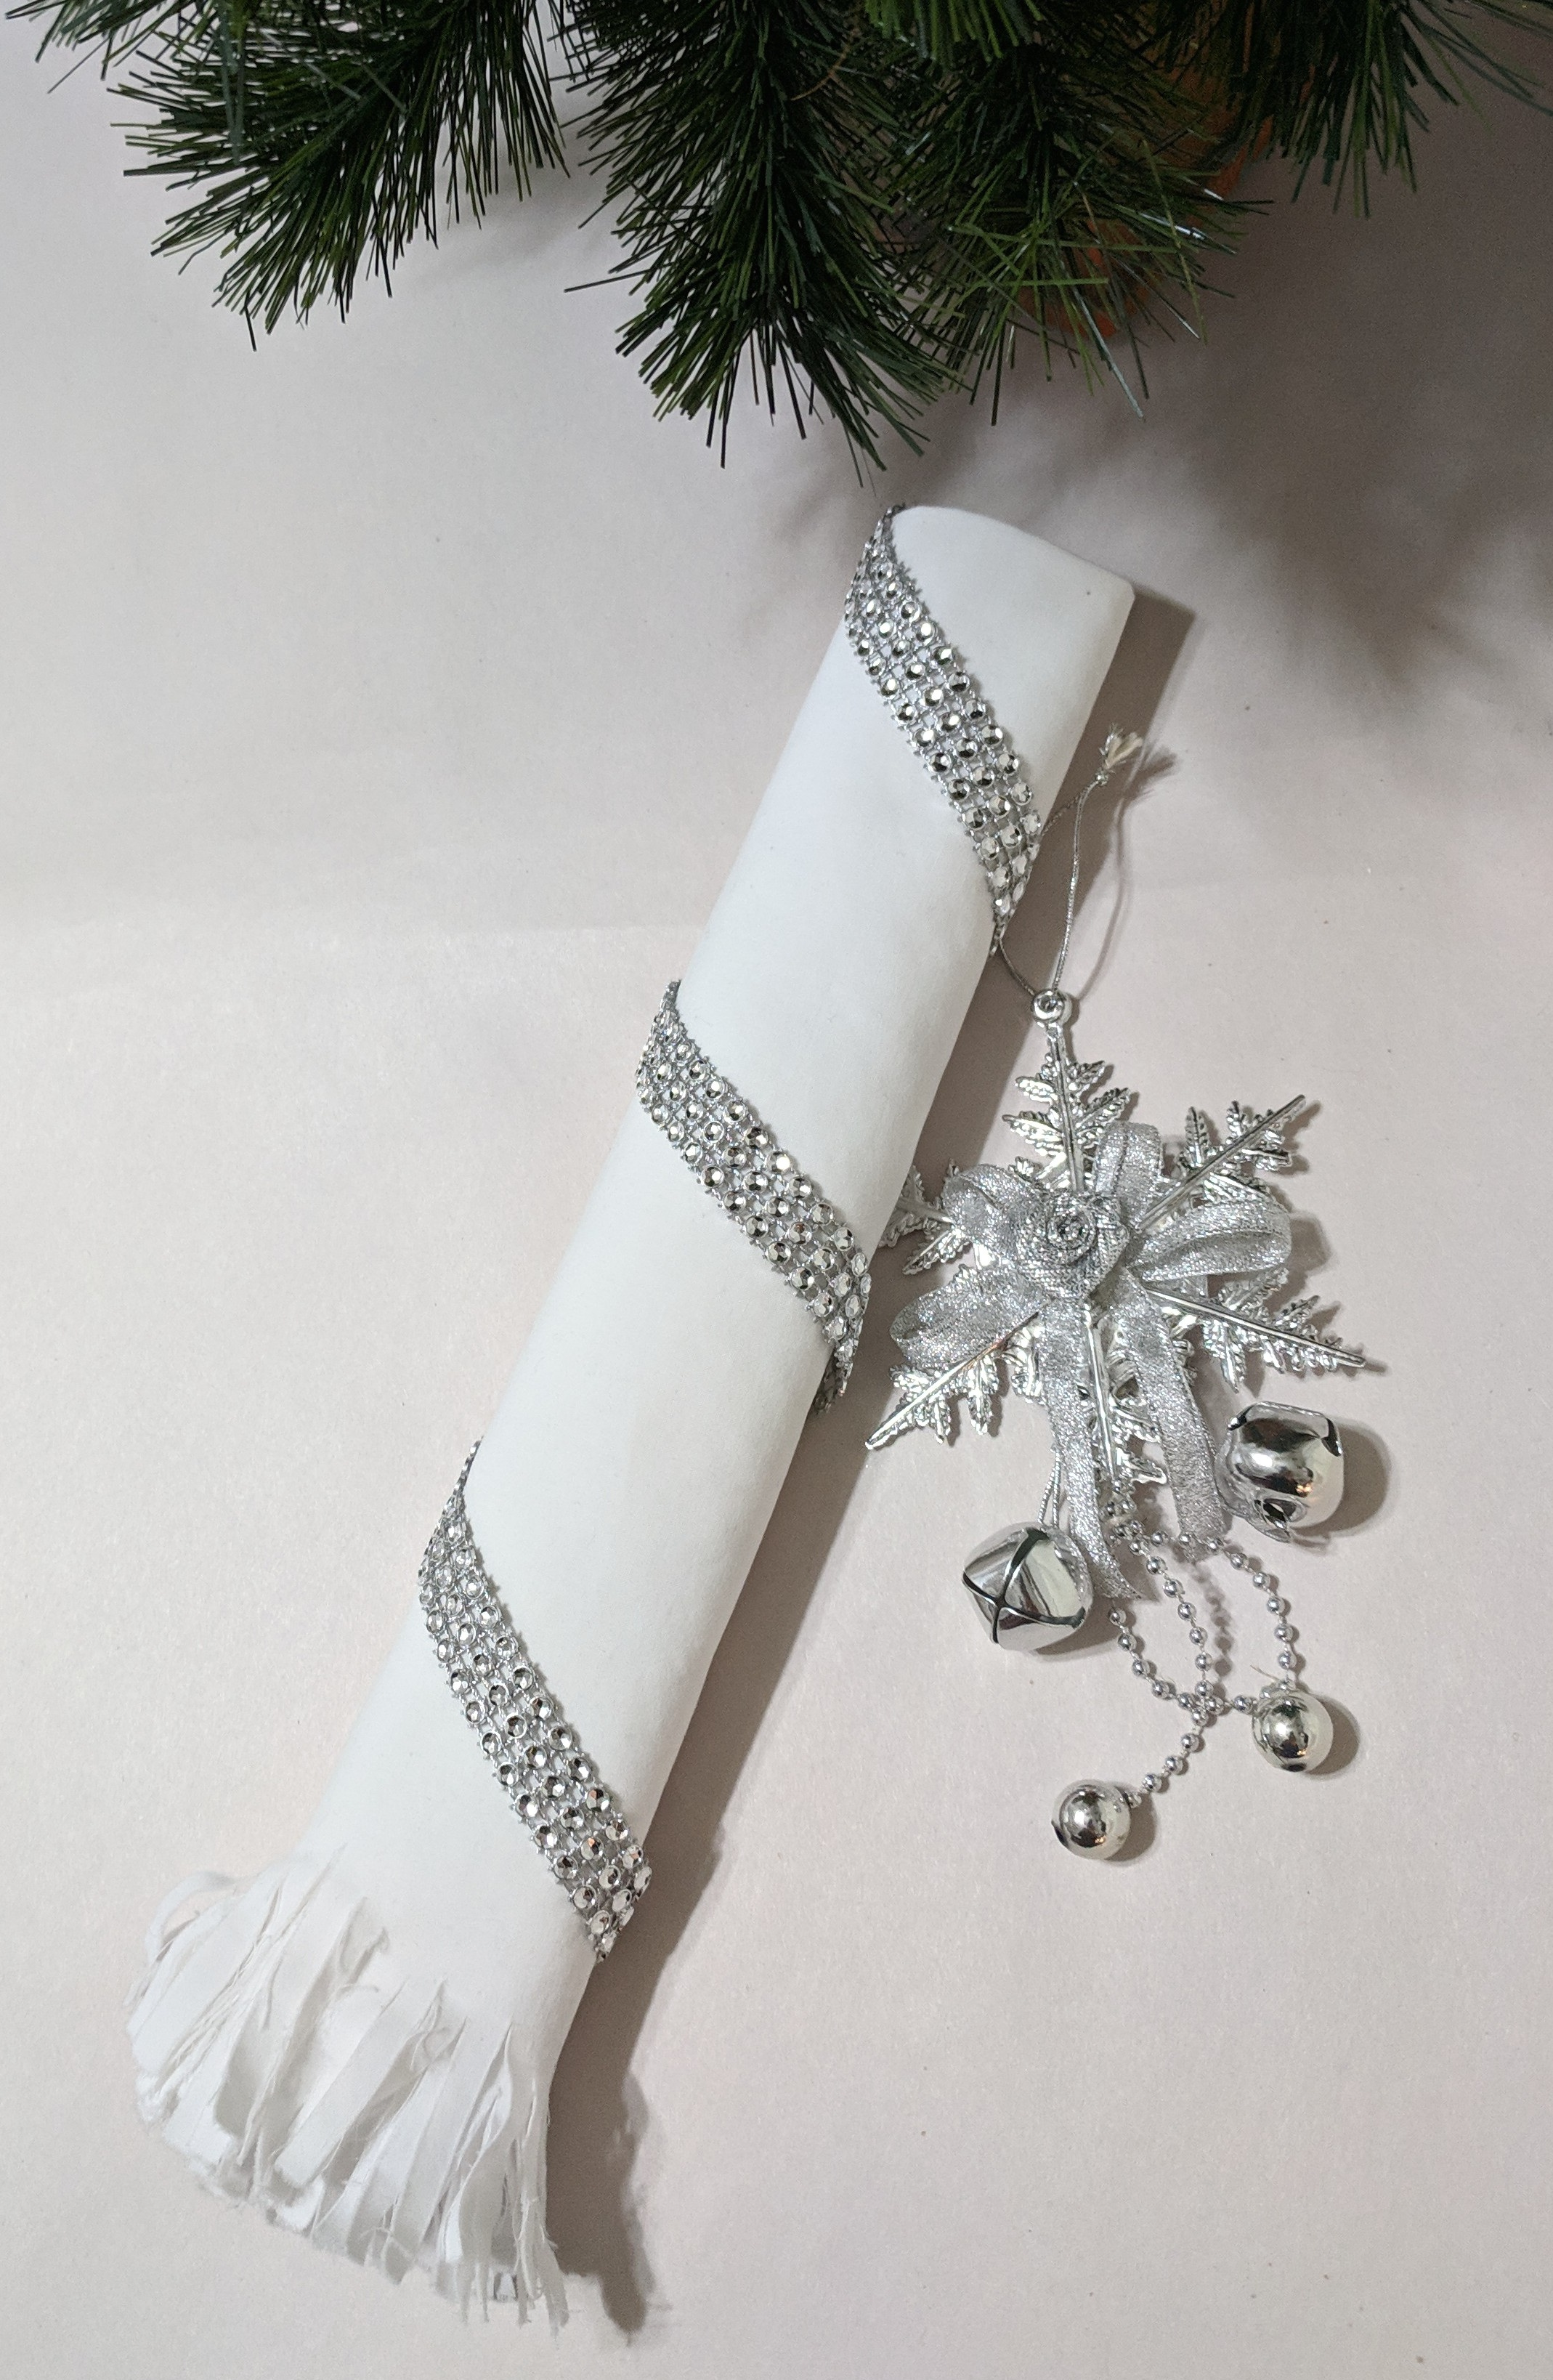 Make It a Wrap - White poly/cotton sheeting fringed and wrapped in a diagonal strip of sequins